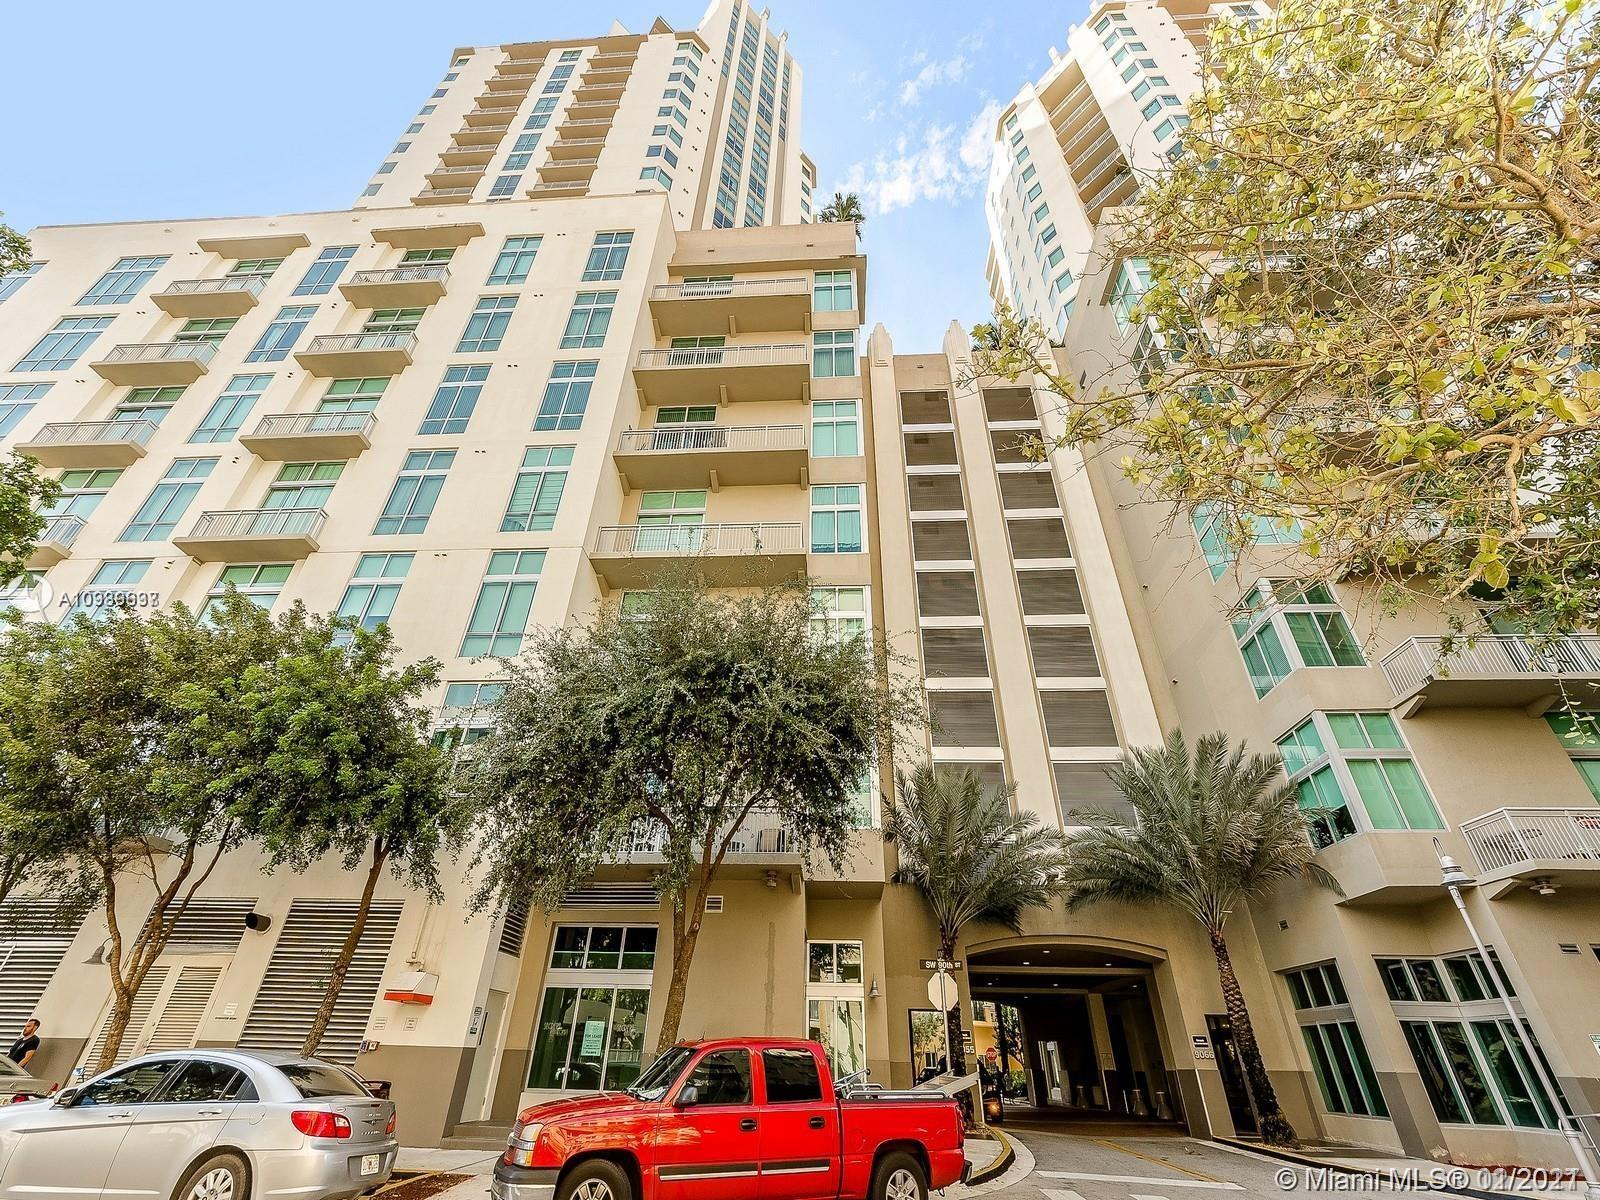 Live in a Resort-Style High Rise! Gorgeous 3 Bedrooms, 2 Bathrooms Condo on the 20th Floor in Metrop